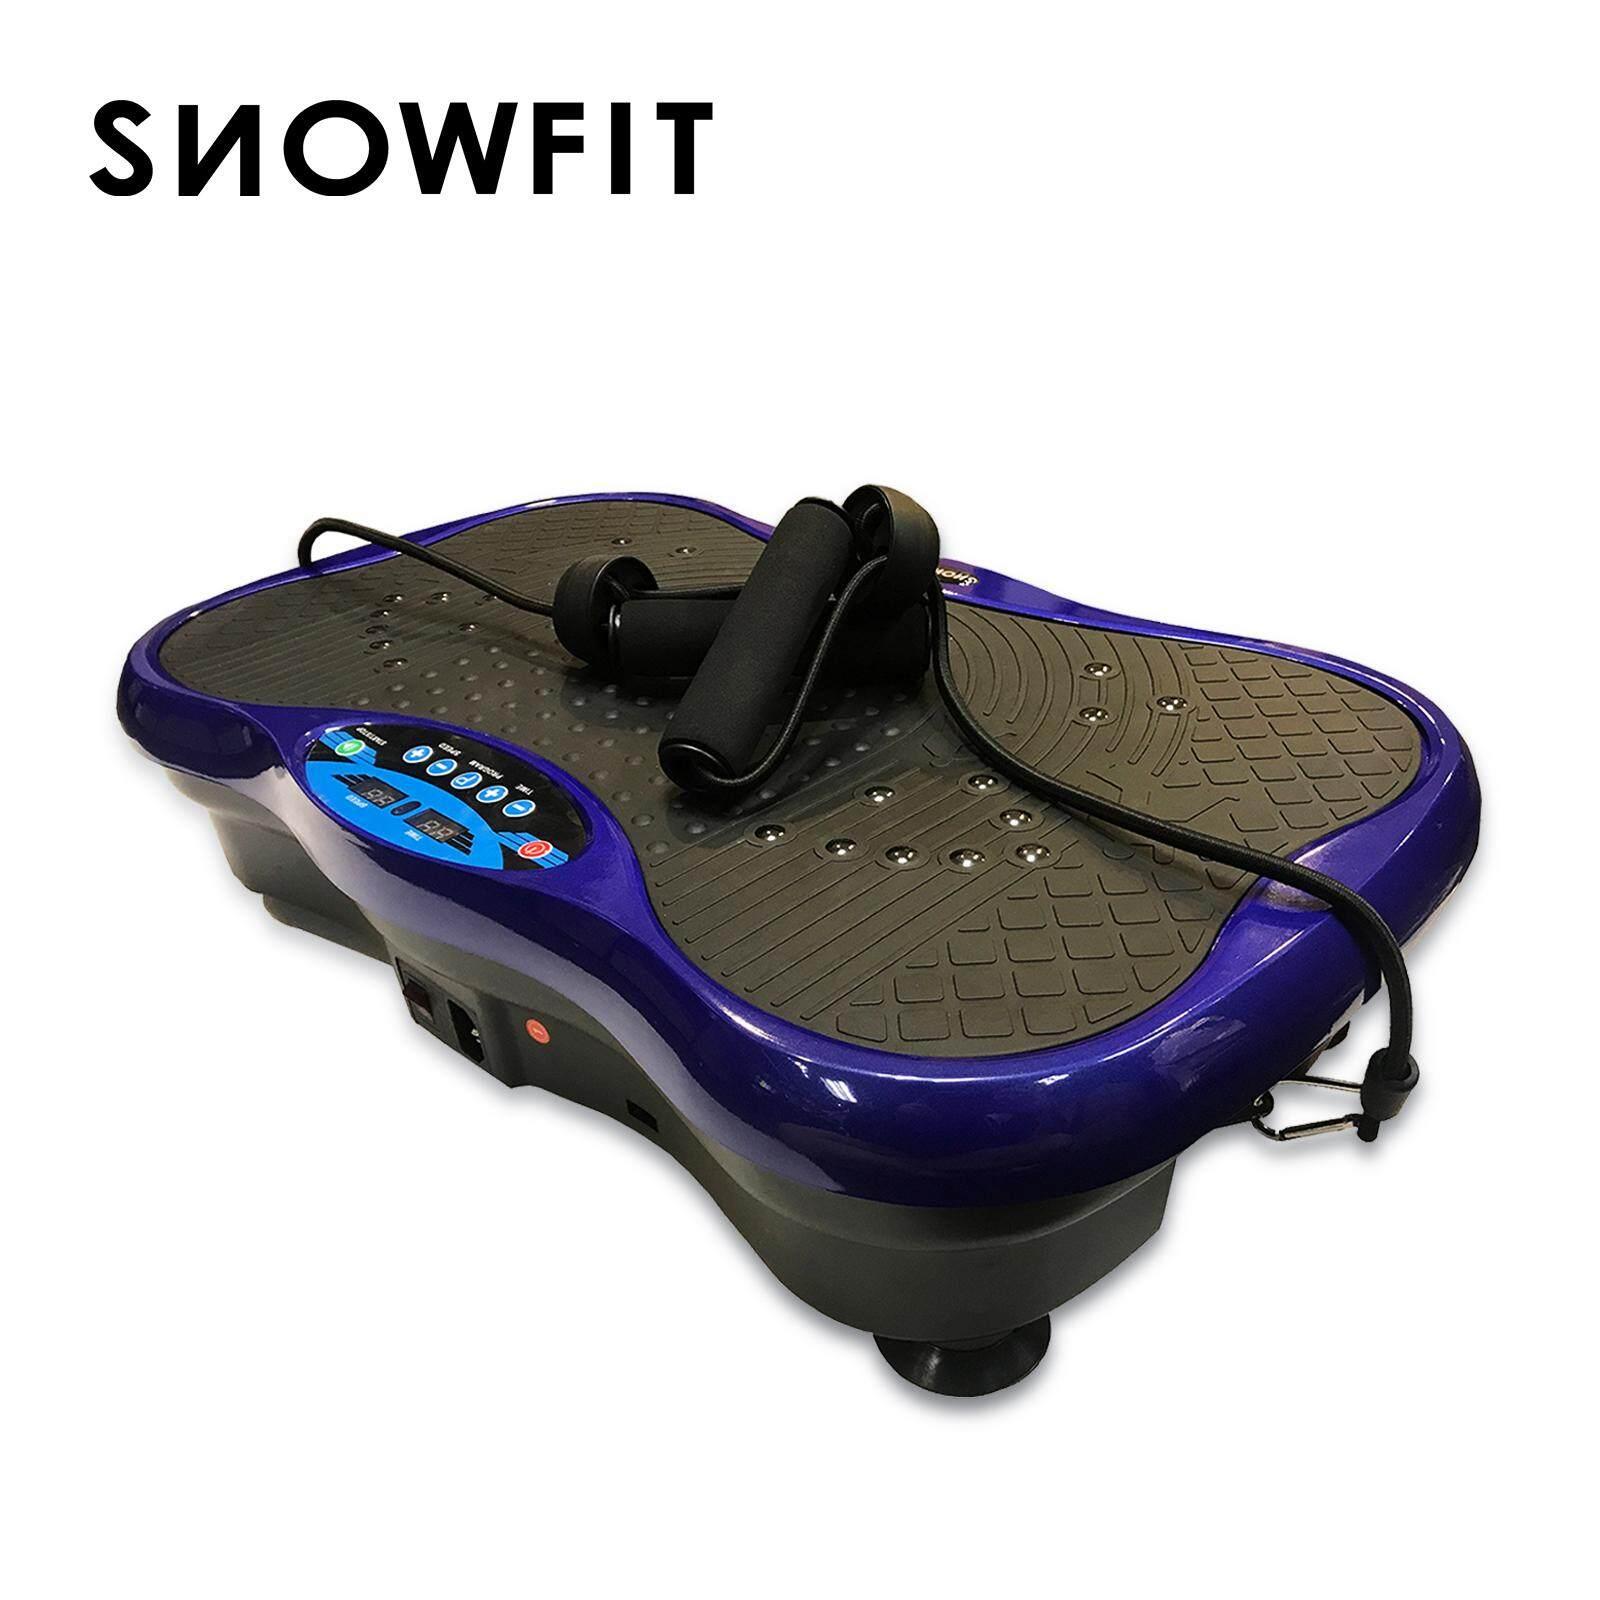 Exercise Fitness Buy At Best Price In Magnetic Trimmer Jogging Body Plate Waist Twisting Alat Olahraga Pinggang Snowfit Snowboard Slimming Ushaper Vibrating Machine